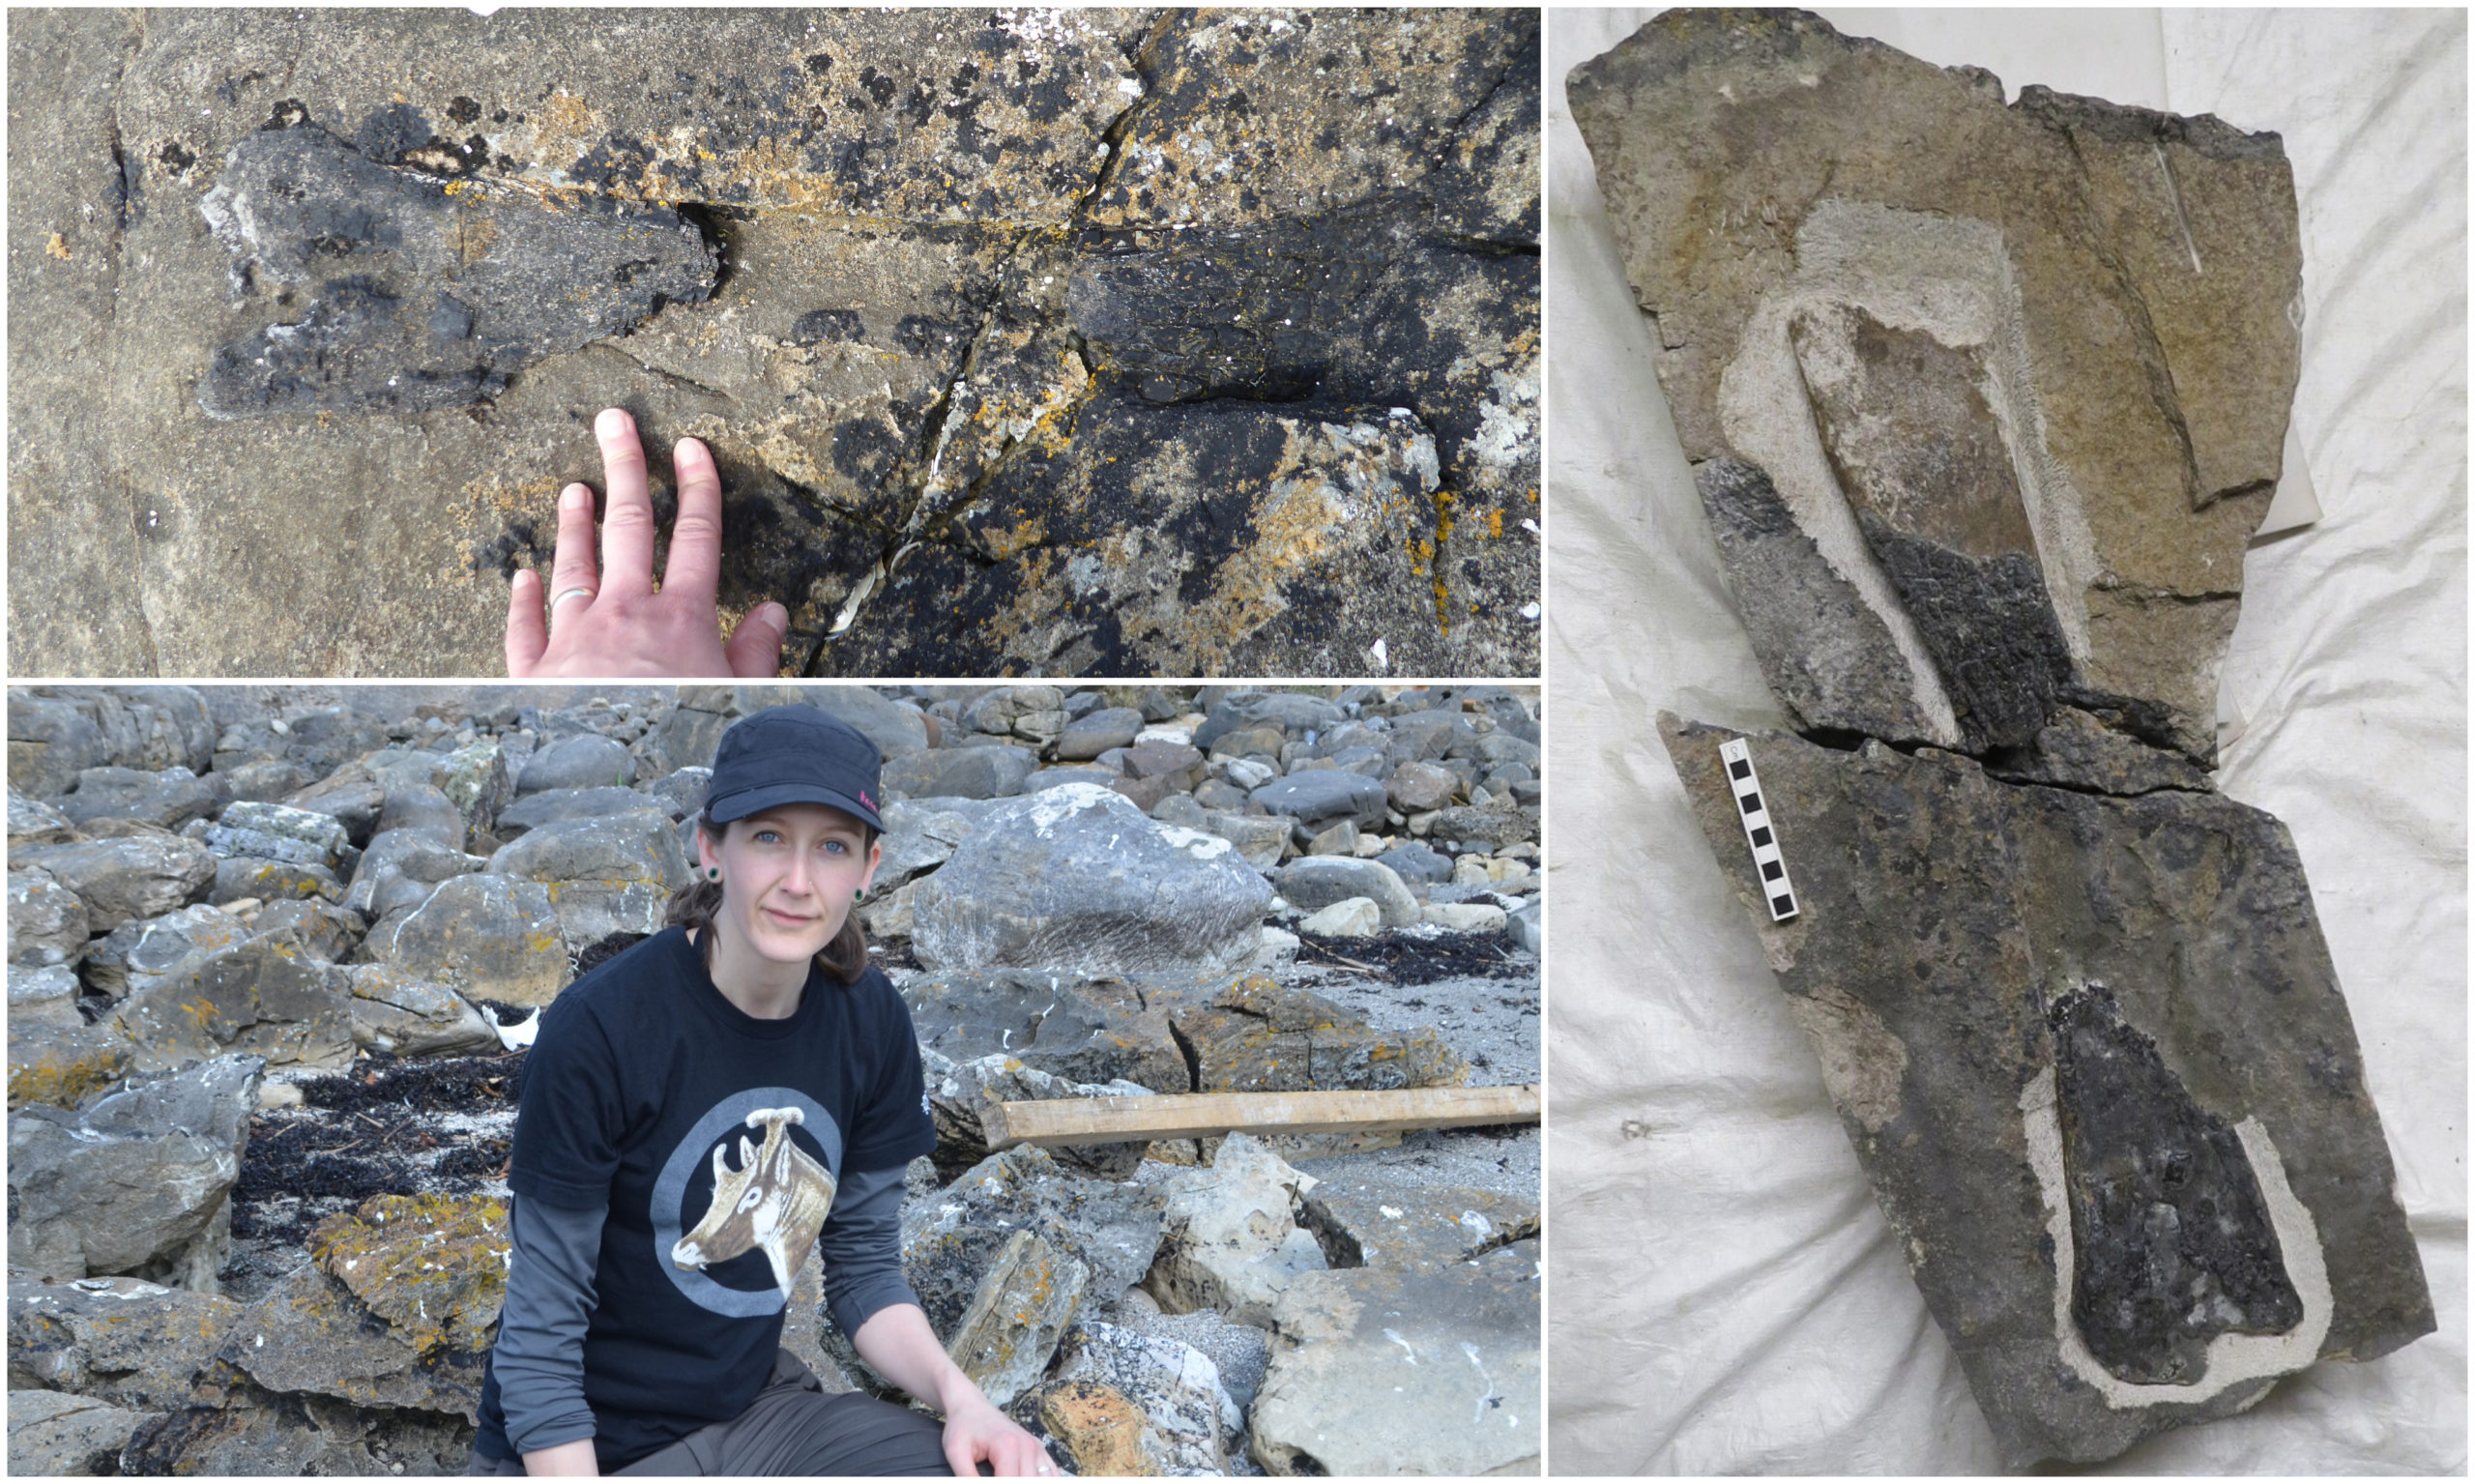 The dinosaur limb is the first of its kind to have been discovered on Eigg